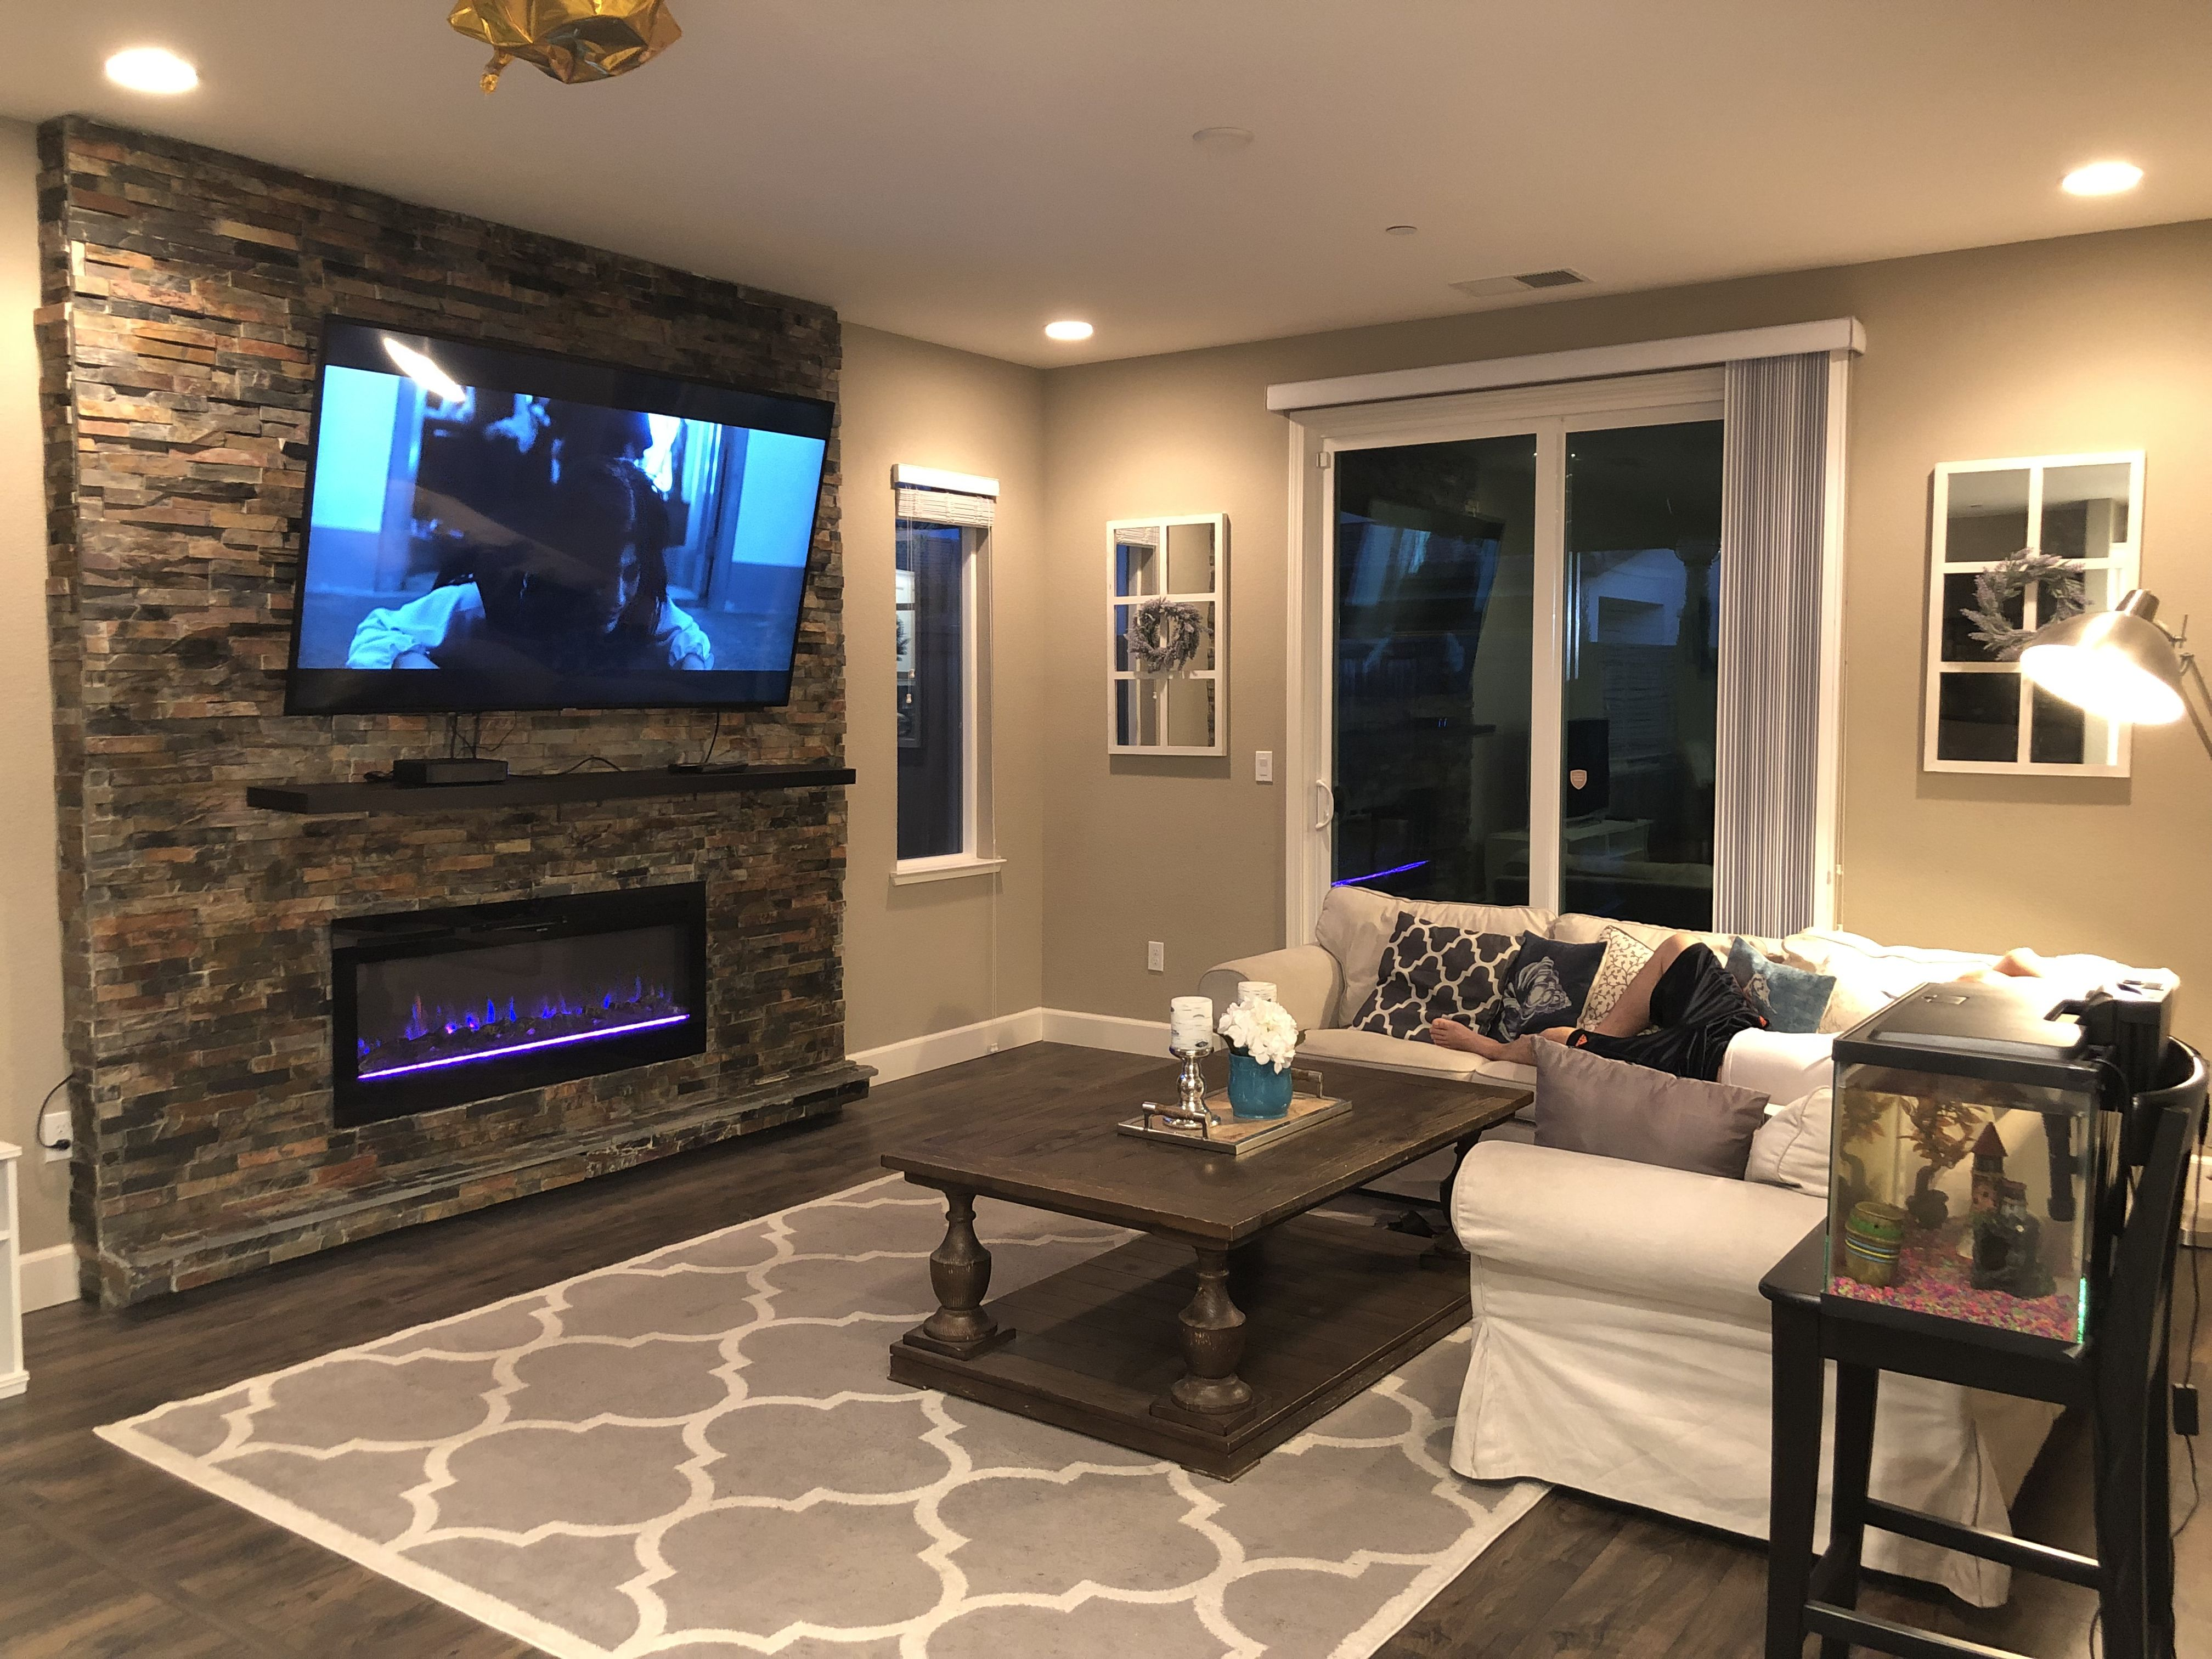 Stone Ledge Tv Wall Accent With Fireplace 75 Inch Stone Feature Wall Accent Walls In Living Room Beautiful Living Rooms